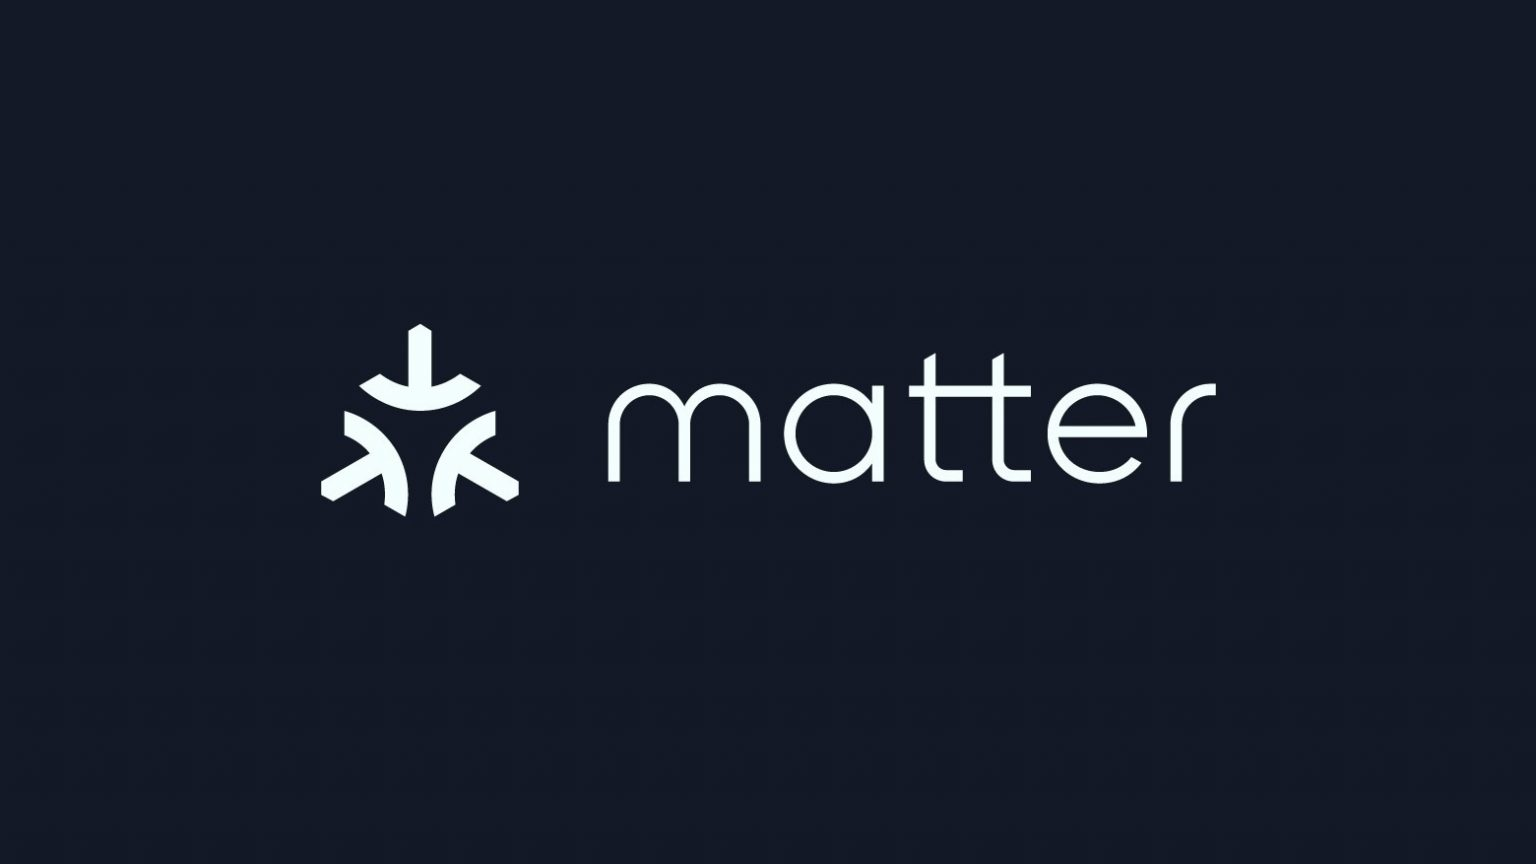 Matter is a new interoperable homer automation standard back by Apple, Amazon, Google and m ore.